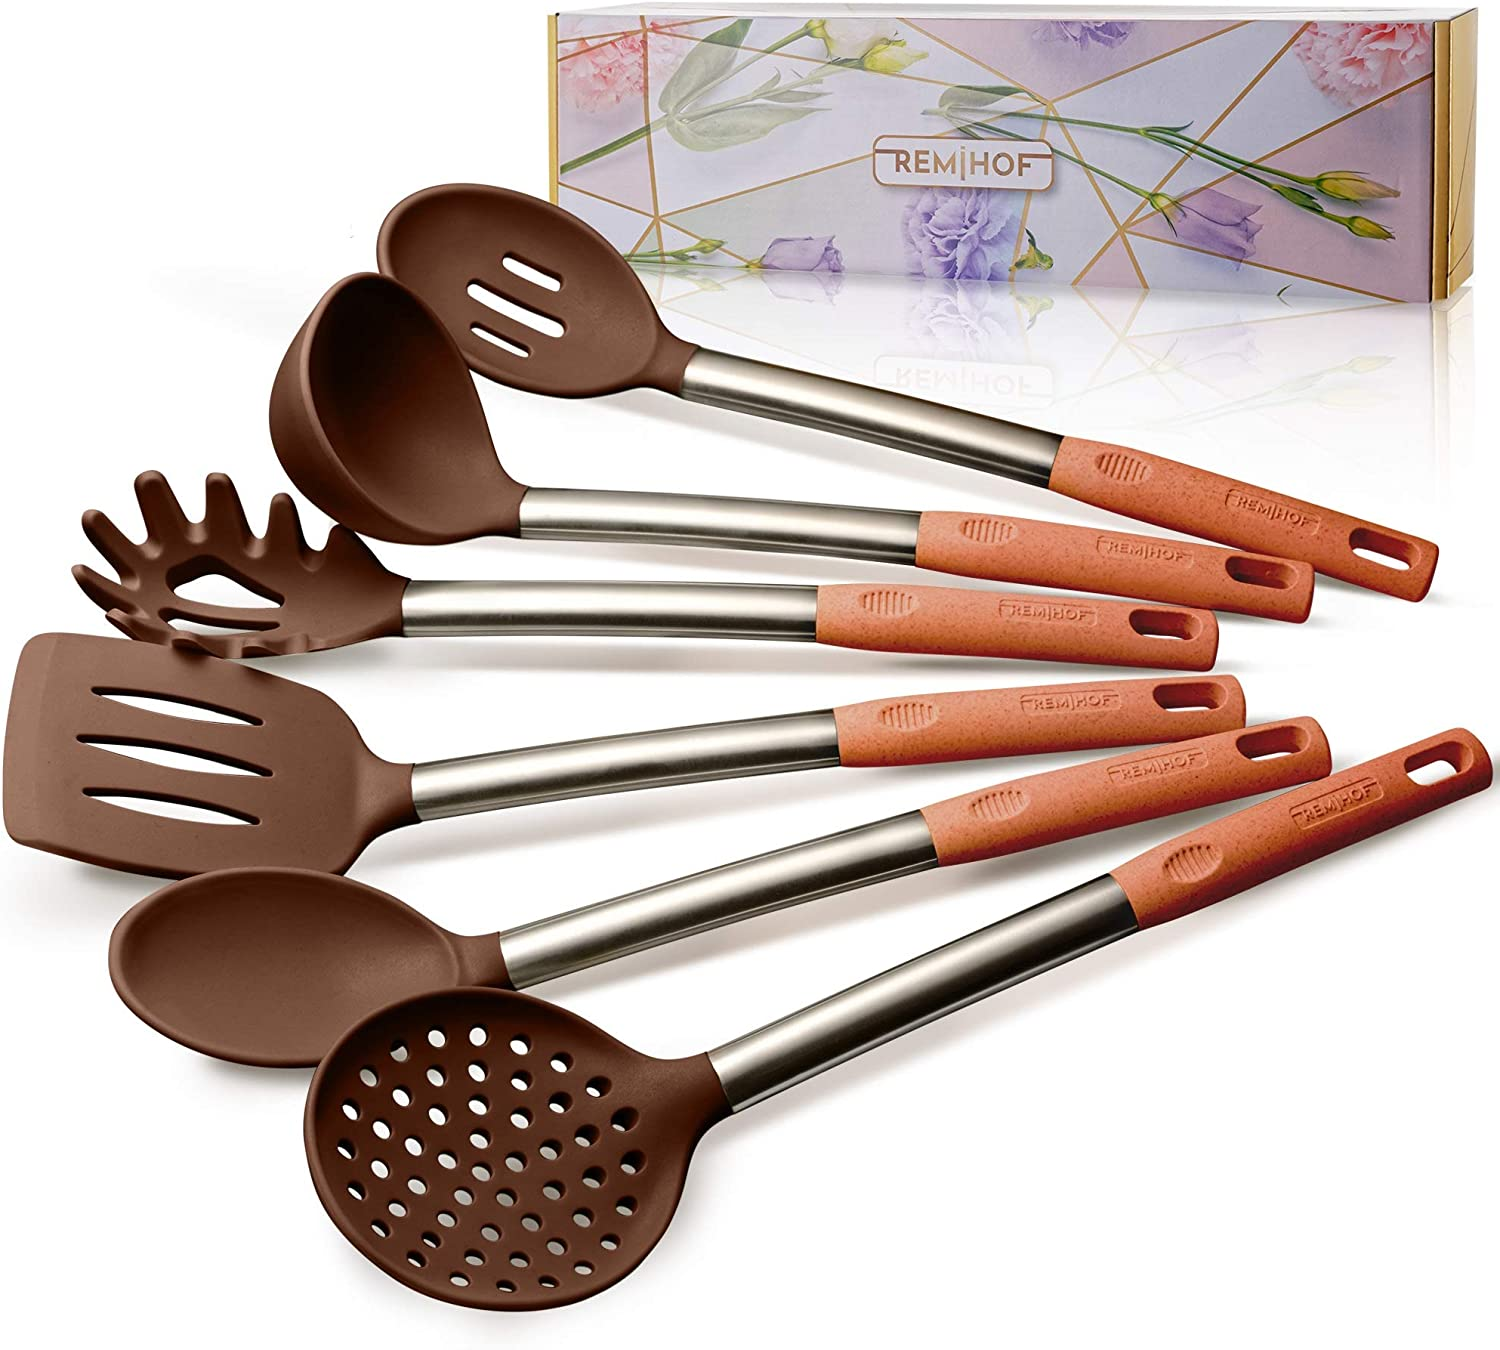 Nonstick Silicone and Stainless Steel Cooking Utensils Spatula Turner Ladle Pasta Server Best Culinary Gift Set 6pcs, Beige REMIHOF Silicone Kitchen Utensil Set